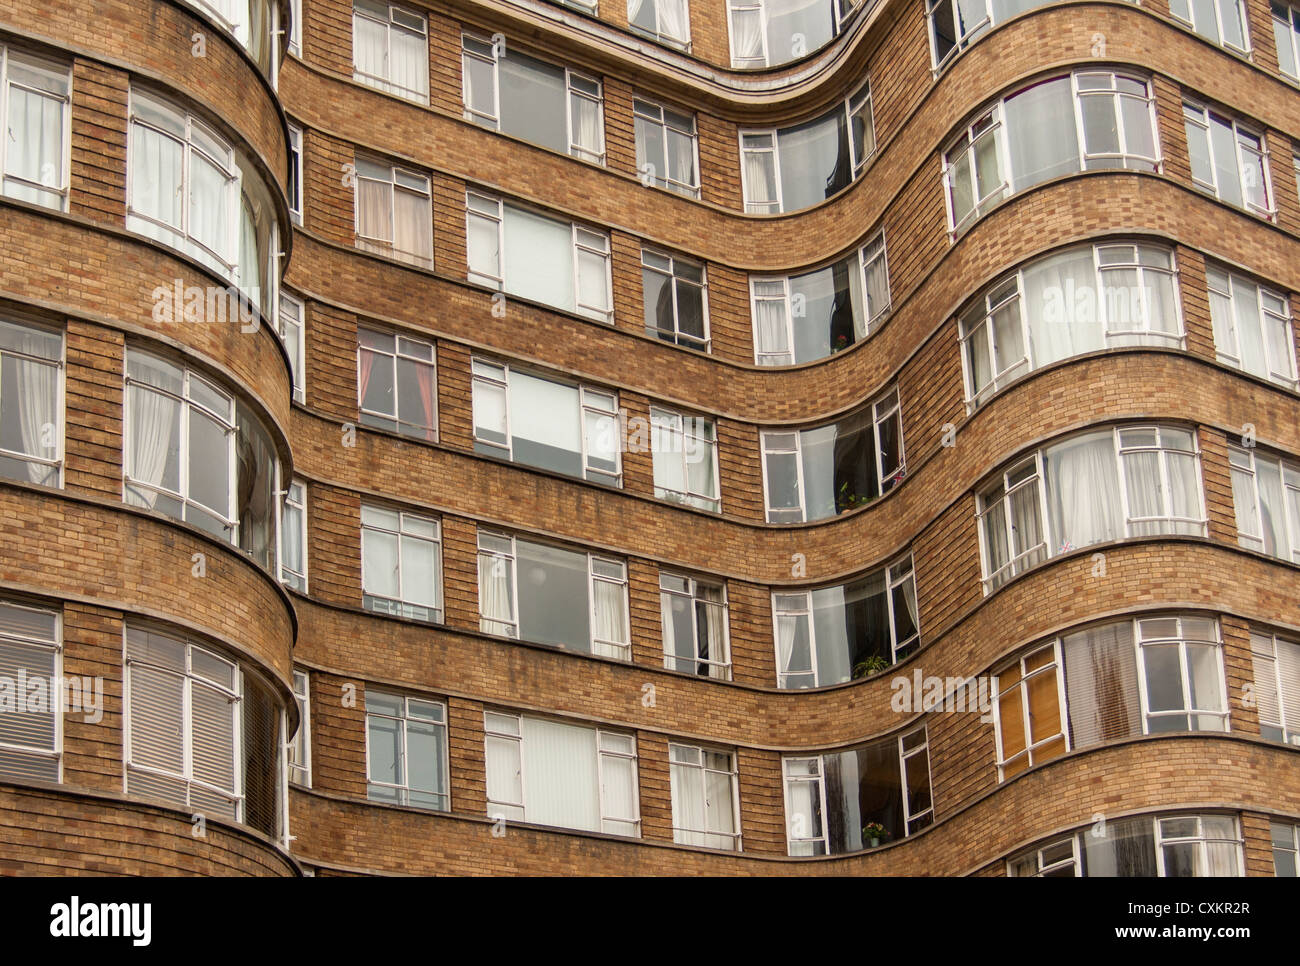 Facade of Florin Court (Whitehaven Mansions - Poirot) - Art deco Building, Charterhouse Square, Smithfield, London, - Stock Image